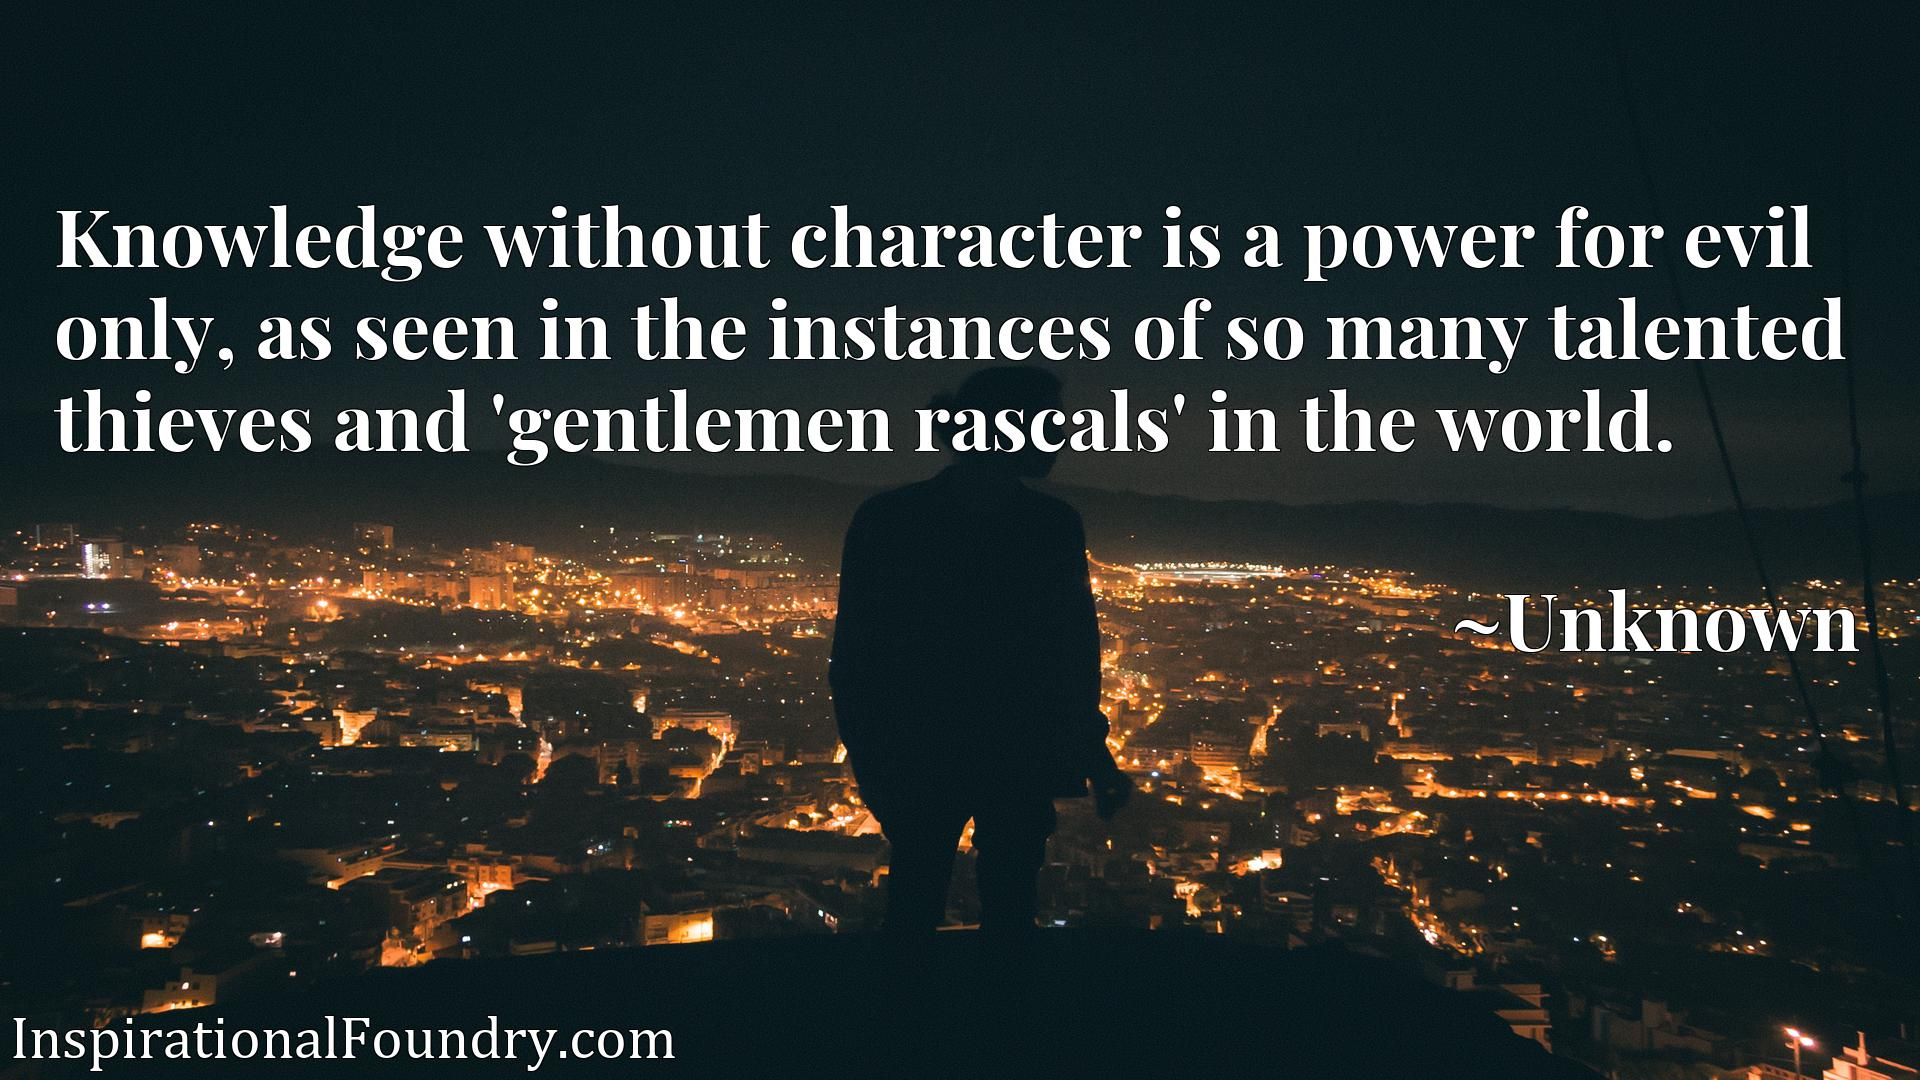 Quote Picture :Knowledge without character is a power for evil only, as seen in the instances of so many talented thieves and 'gentlemen rascals' in the world.